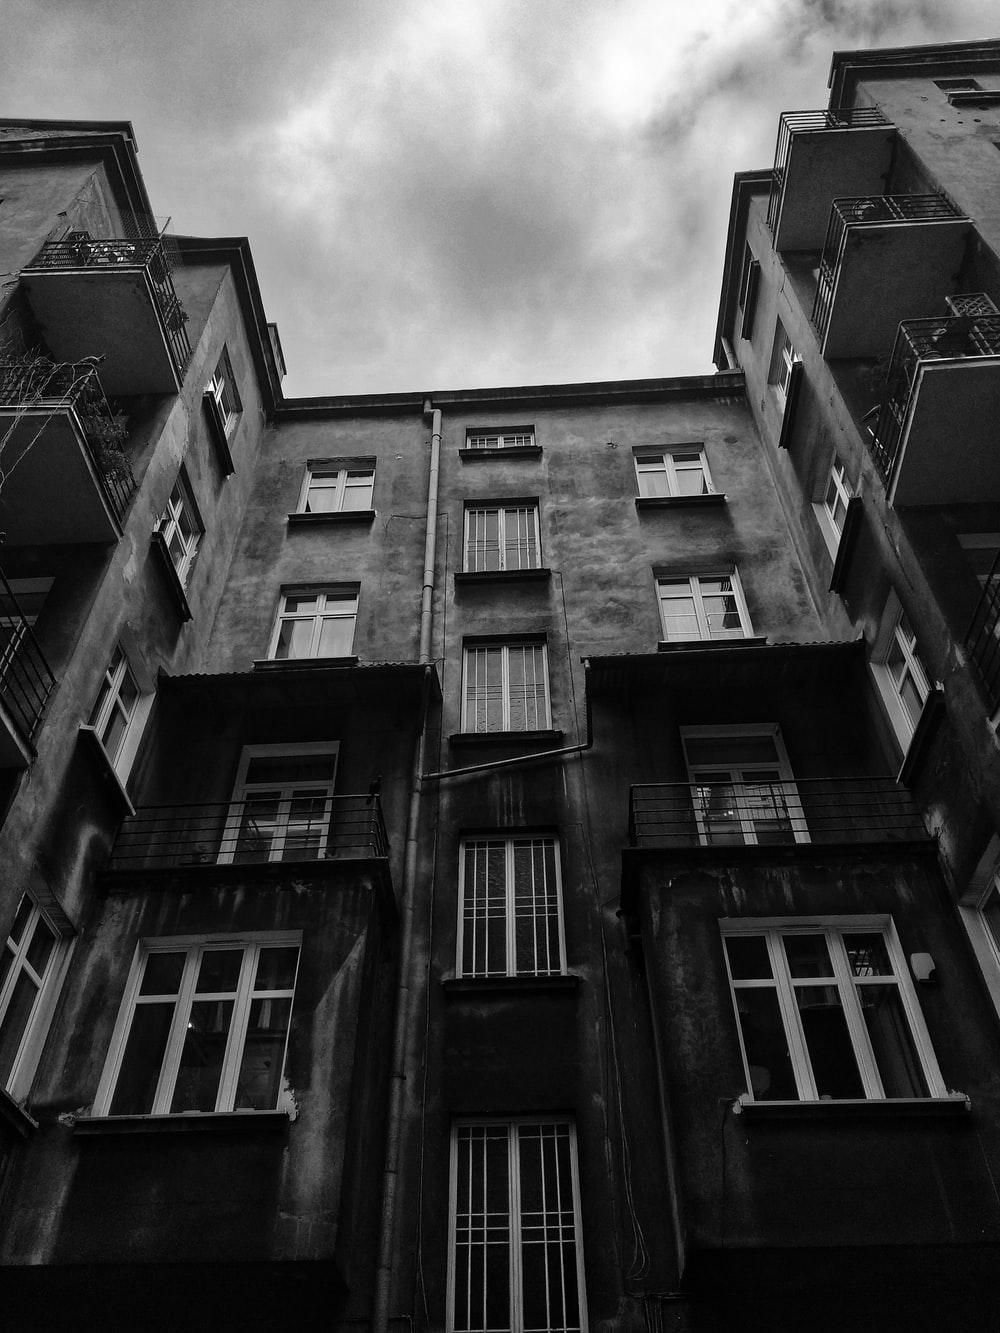 greyscale photo of building